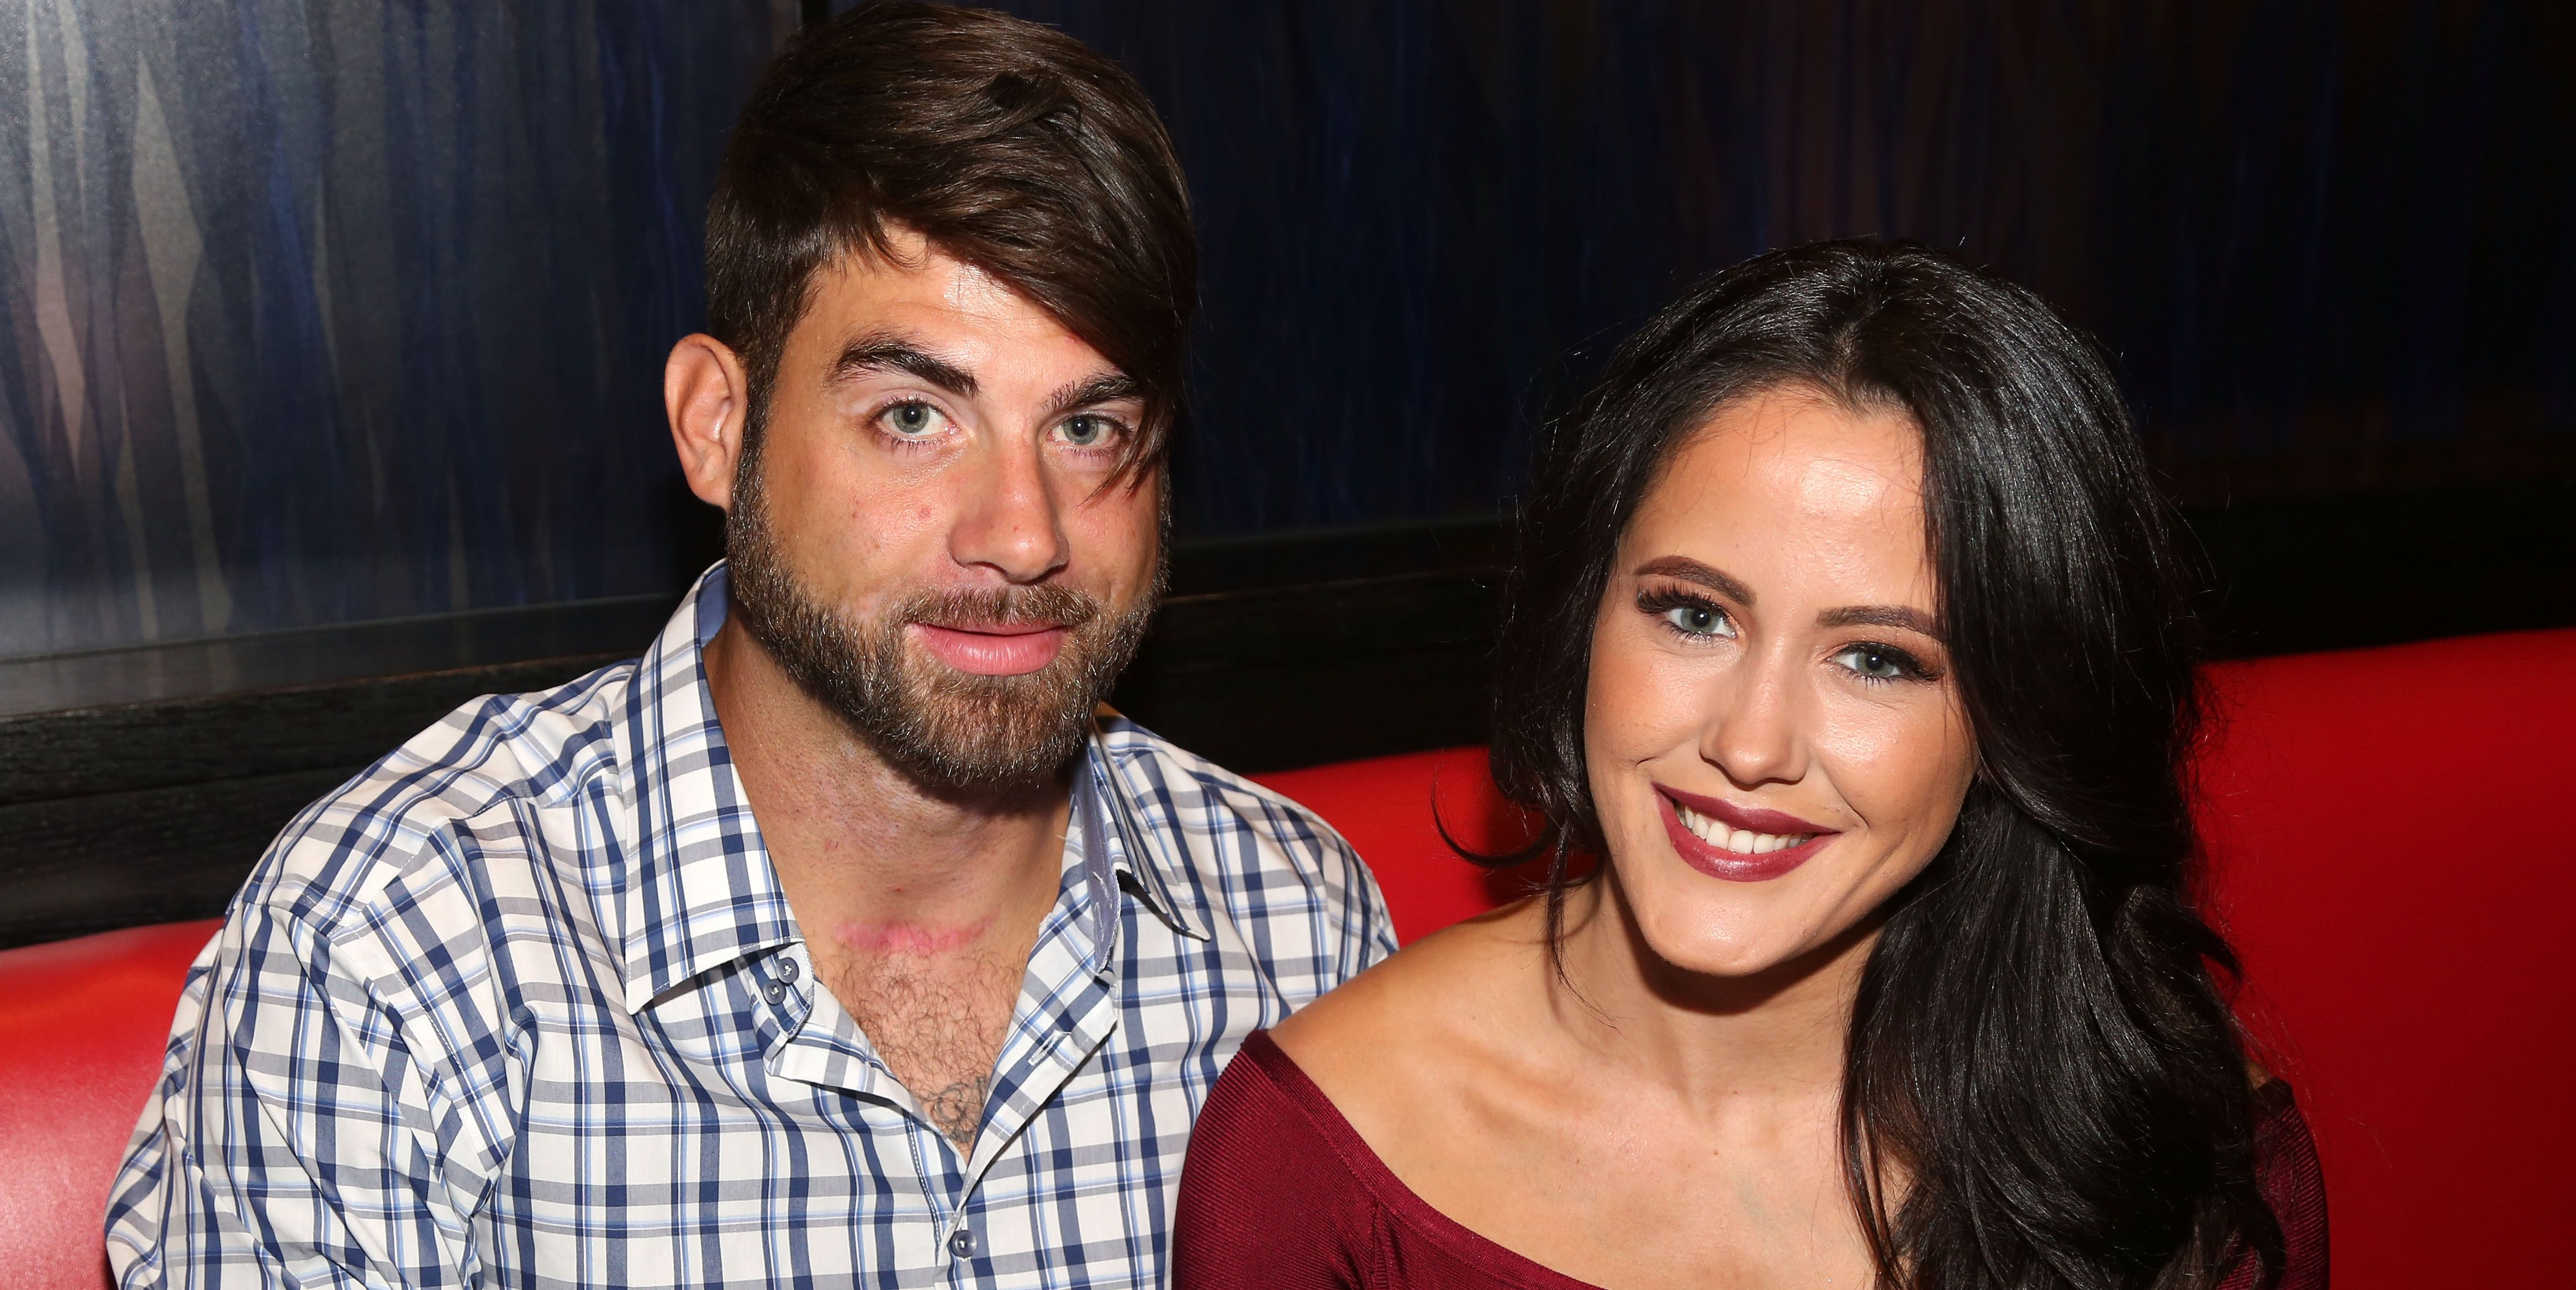 Teen Mom Jenelle Evans Just Got Married and Her Dress Is Stunning